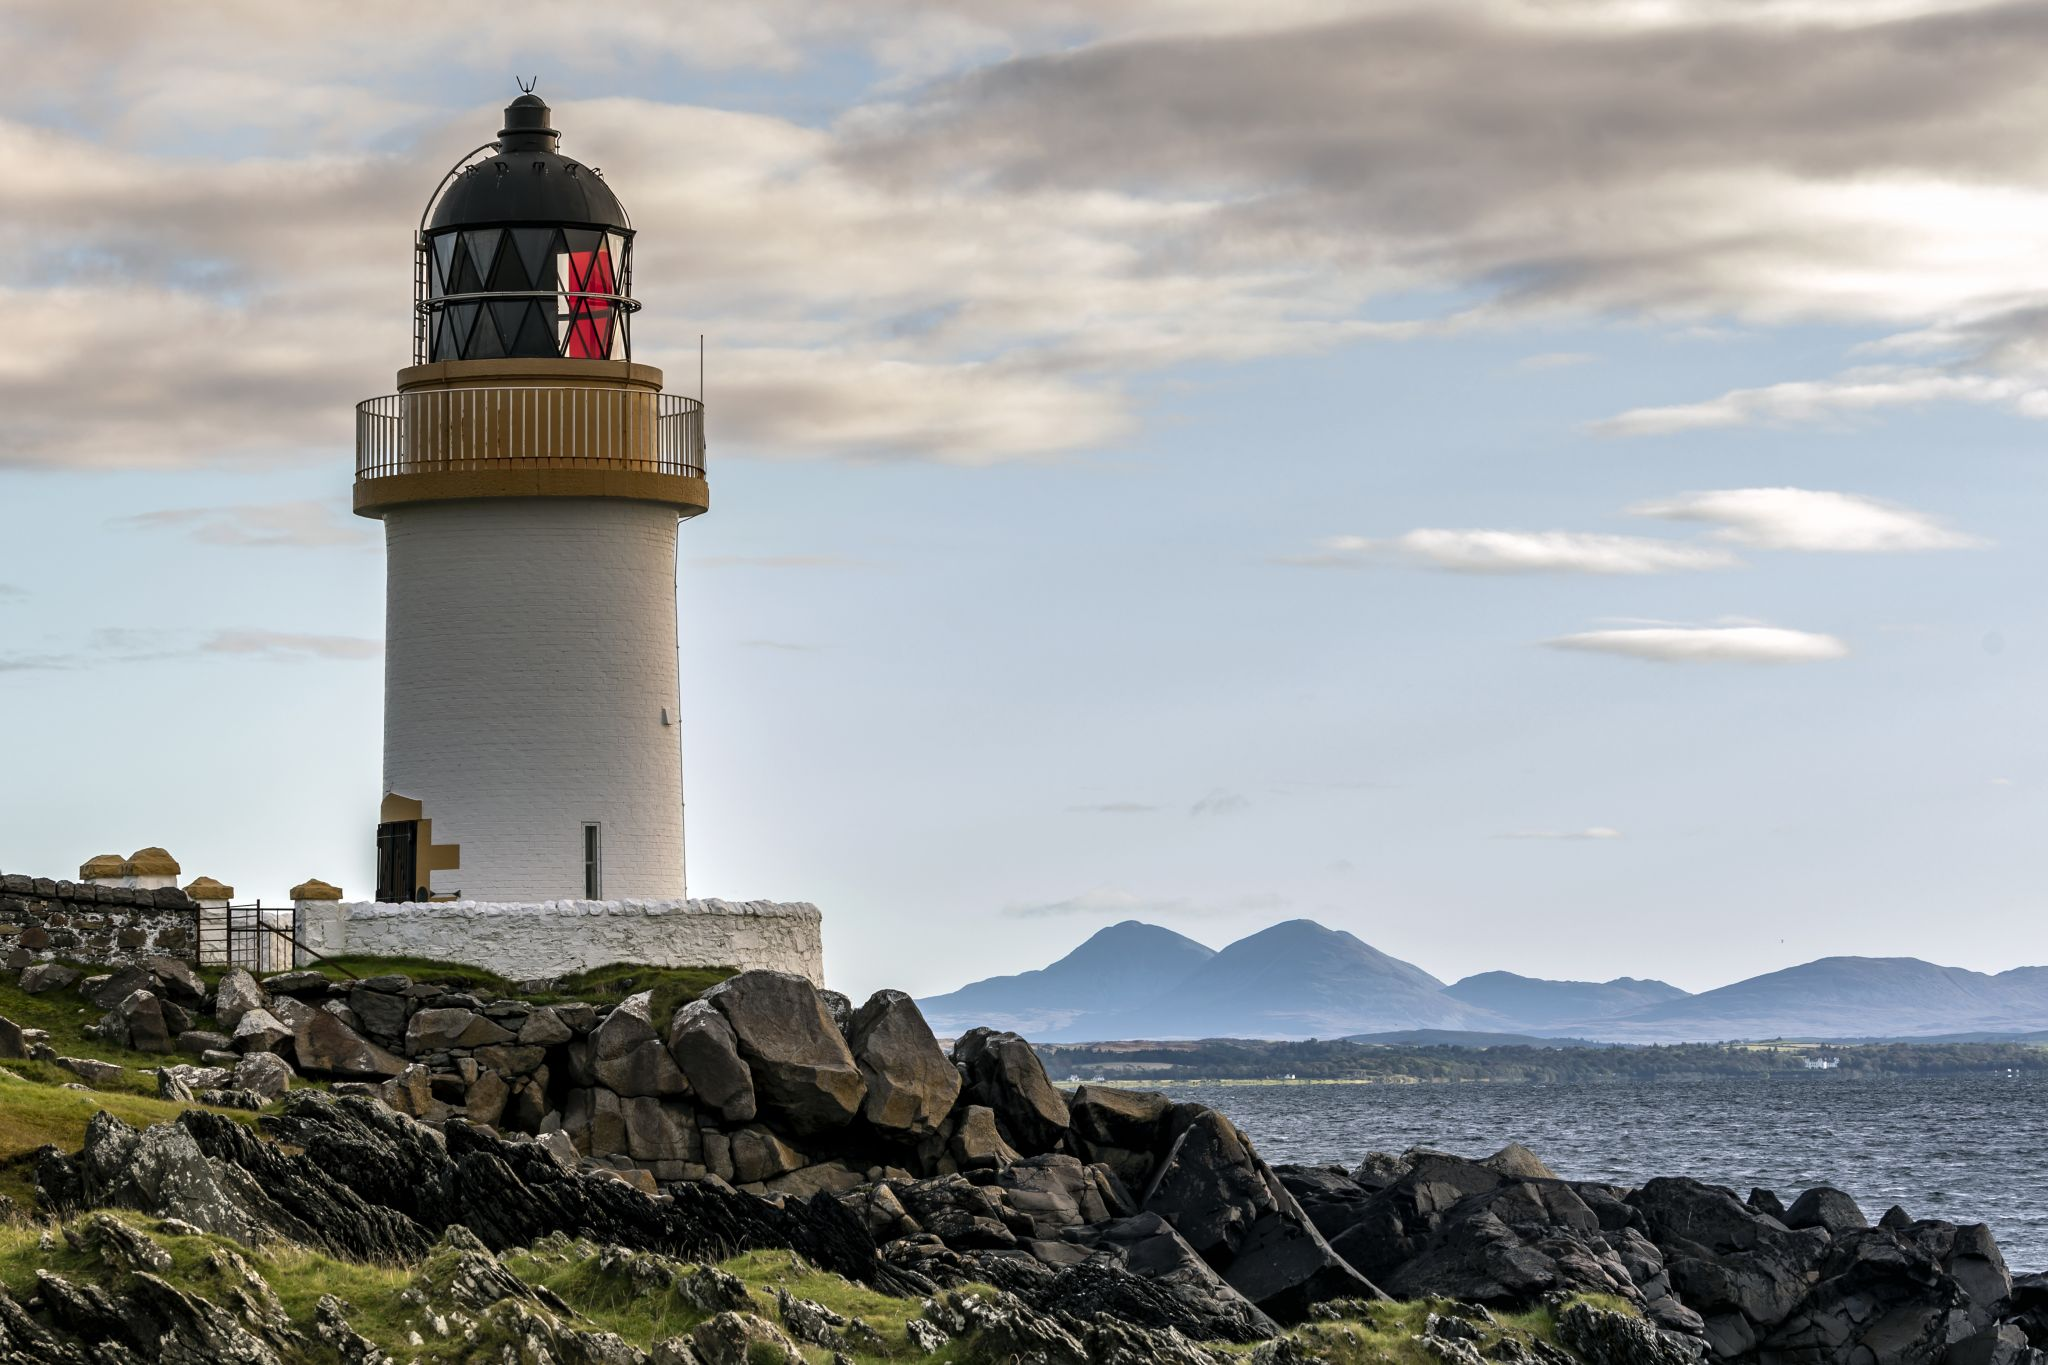 Loch Indaal (Rubh' an Duin) Lighthouse on the Isle of Islay, United Kingdom